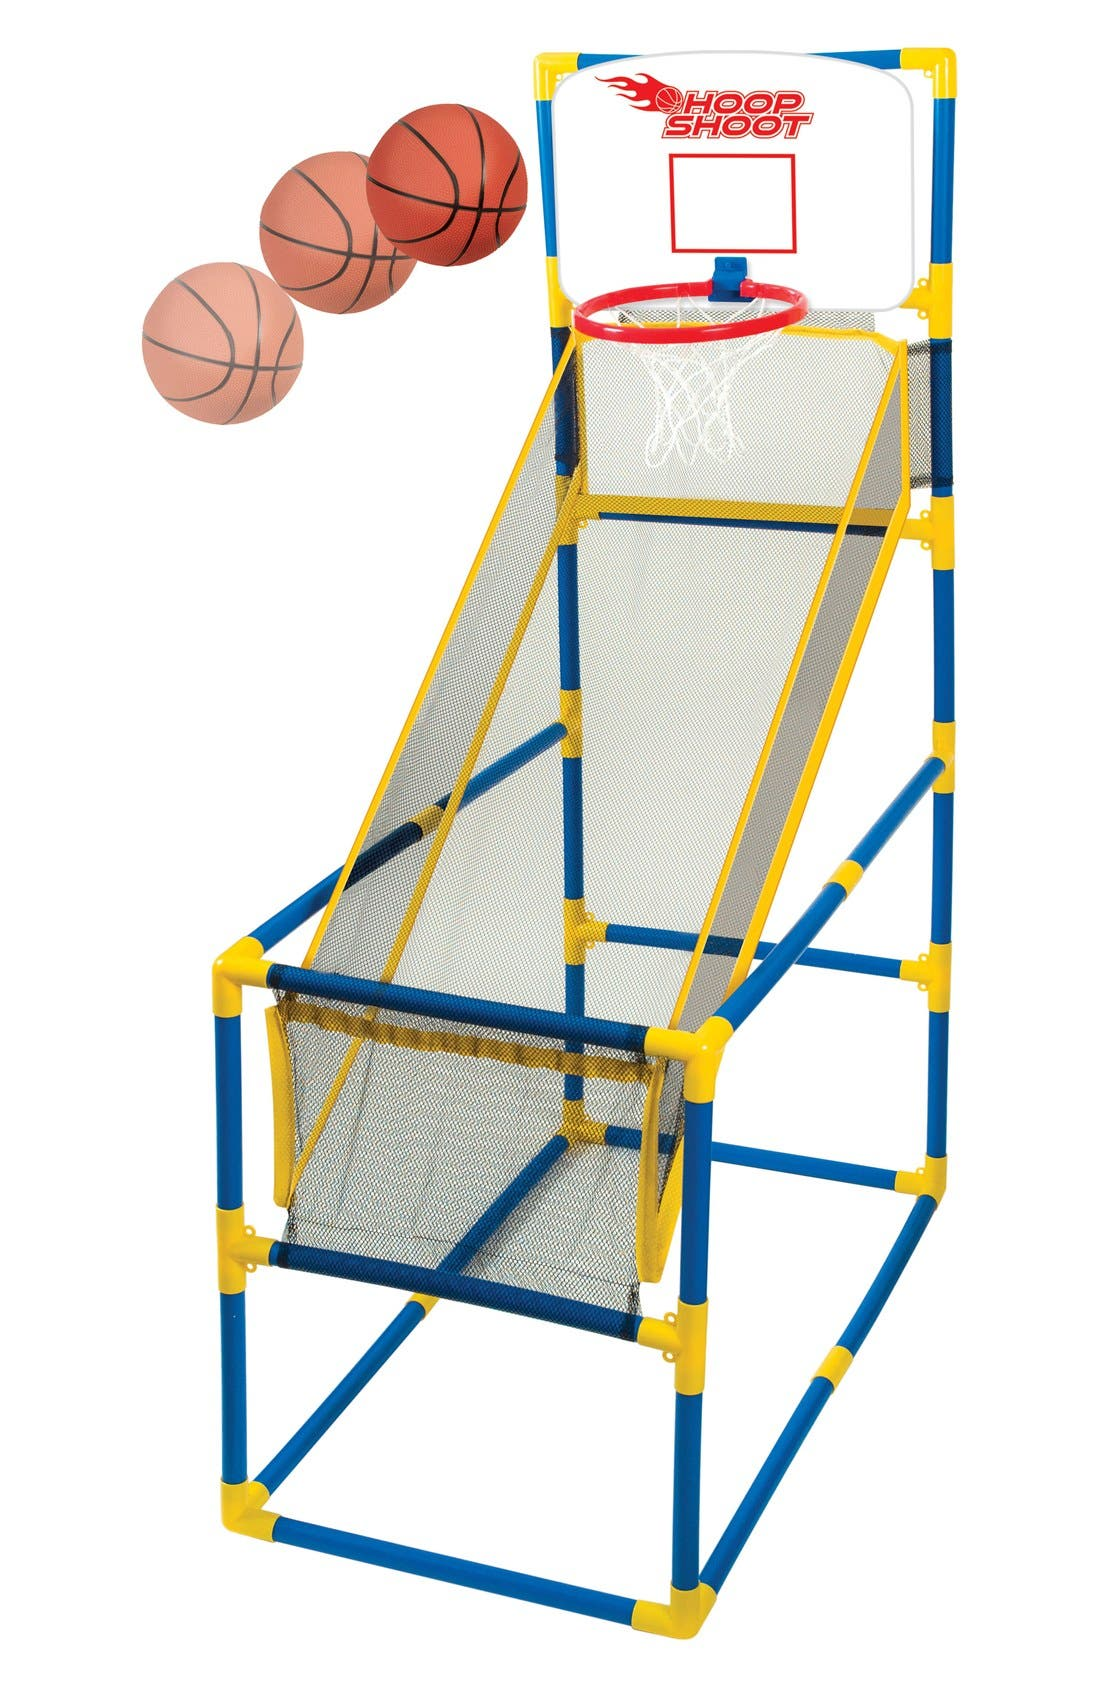 Westminster Toys Hoop Shoot Basketball Play Set